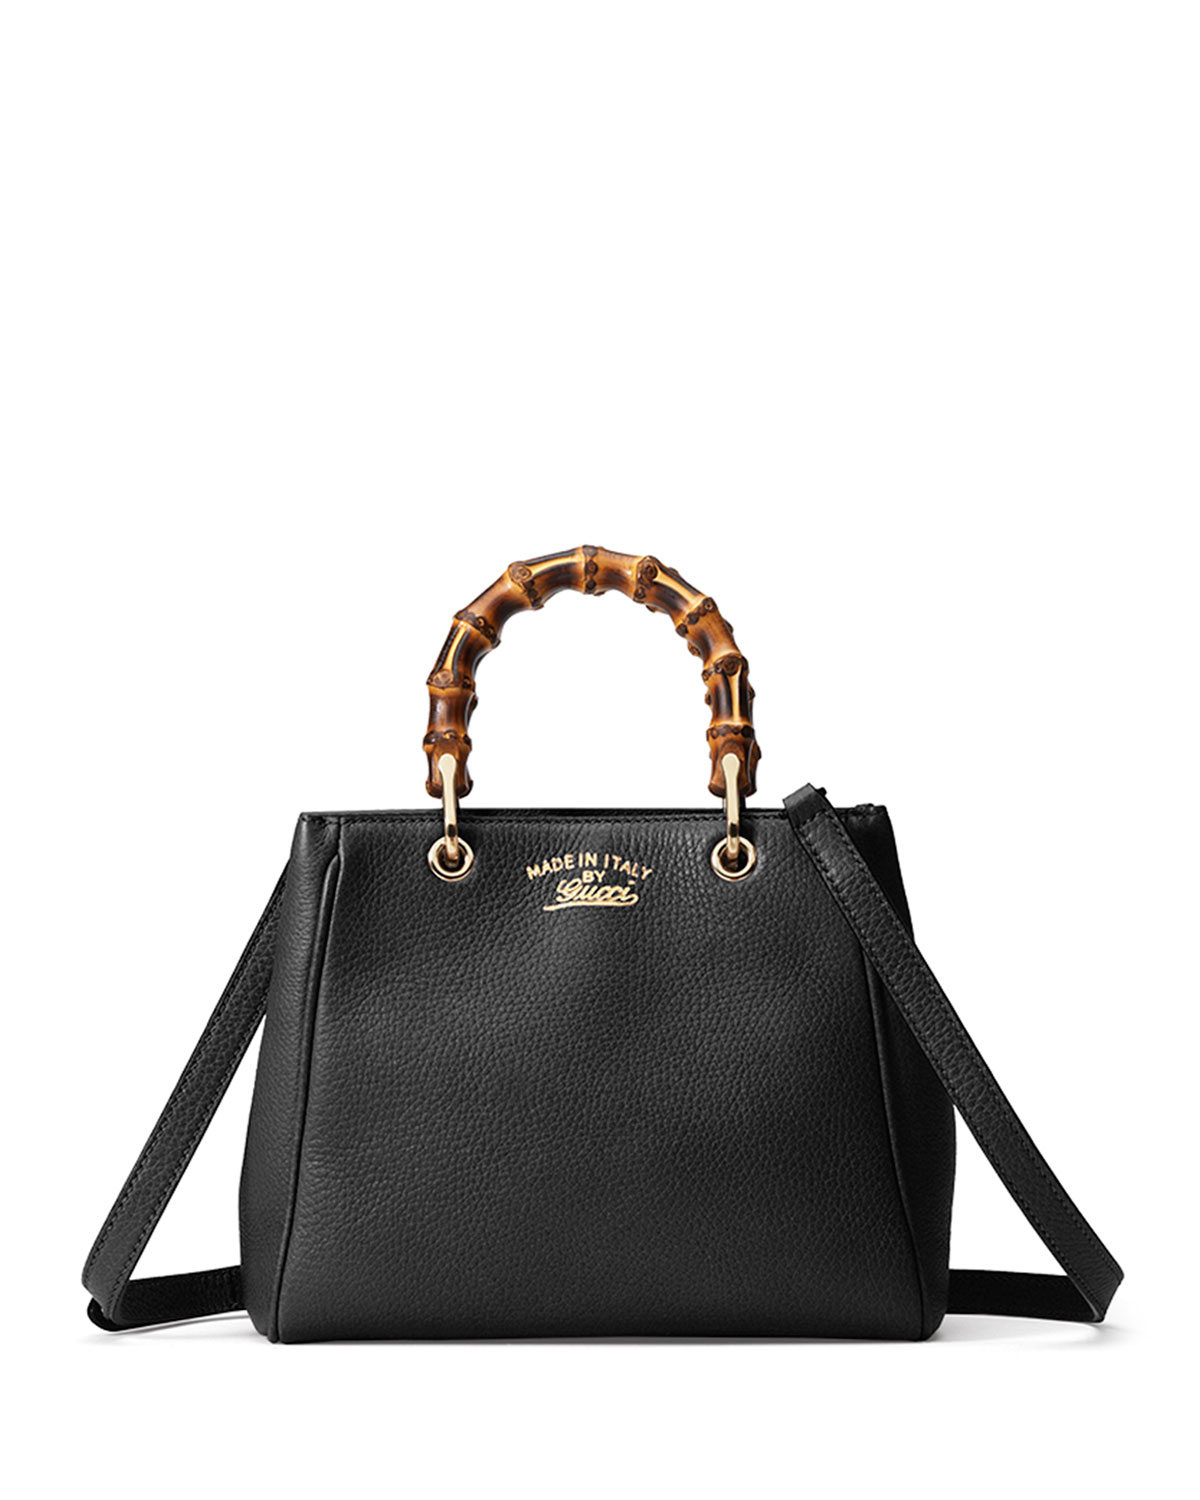 332d68b27 Gucci Bamboo Shopper Mini Leather Top Handle Bag, Black | Neiman Marcus